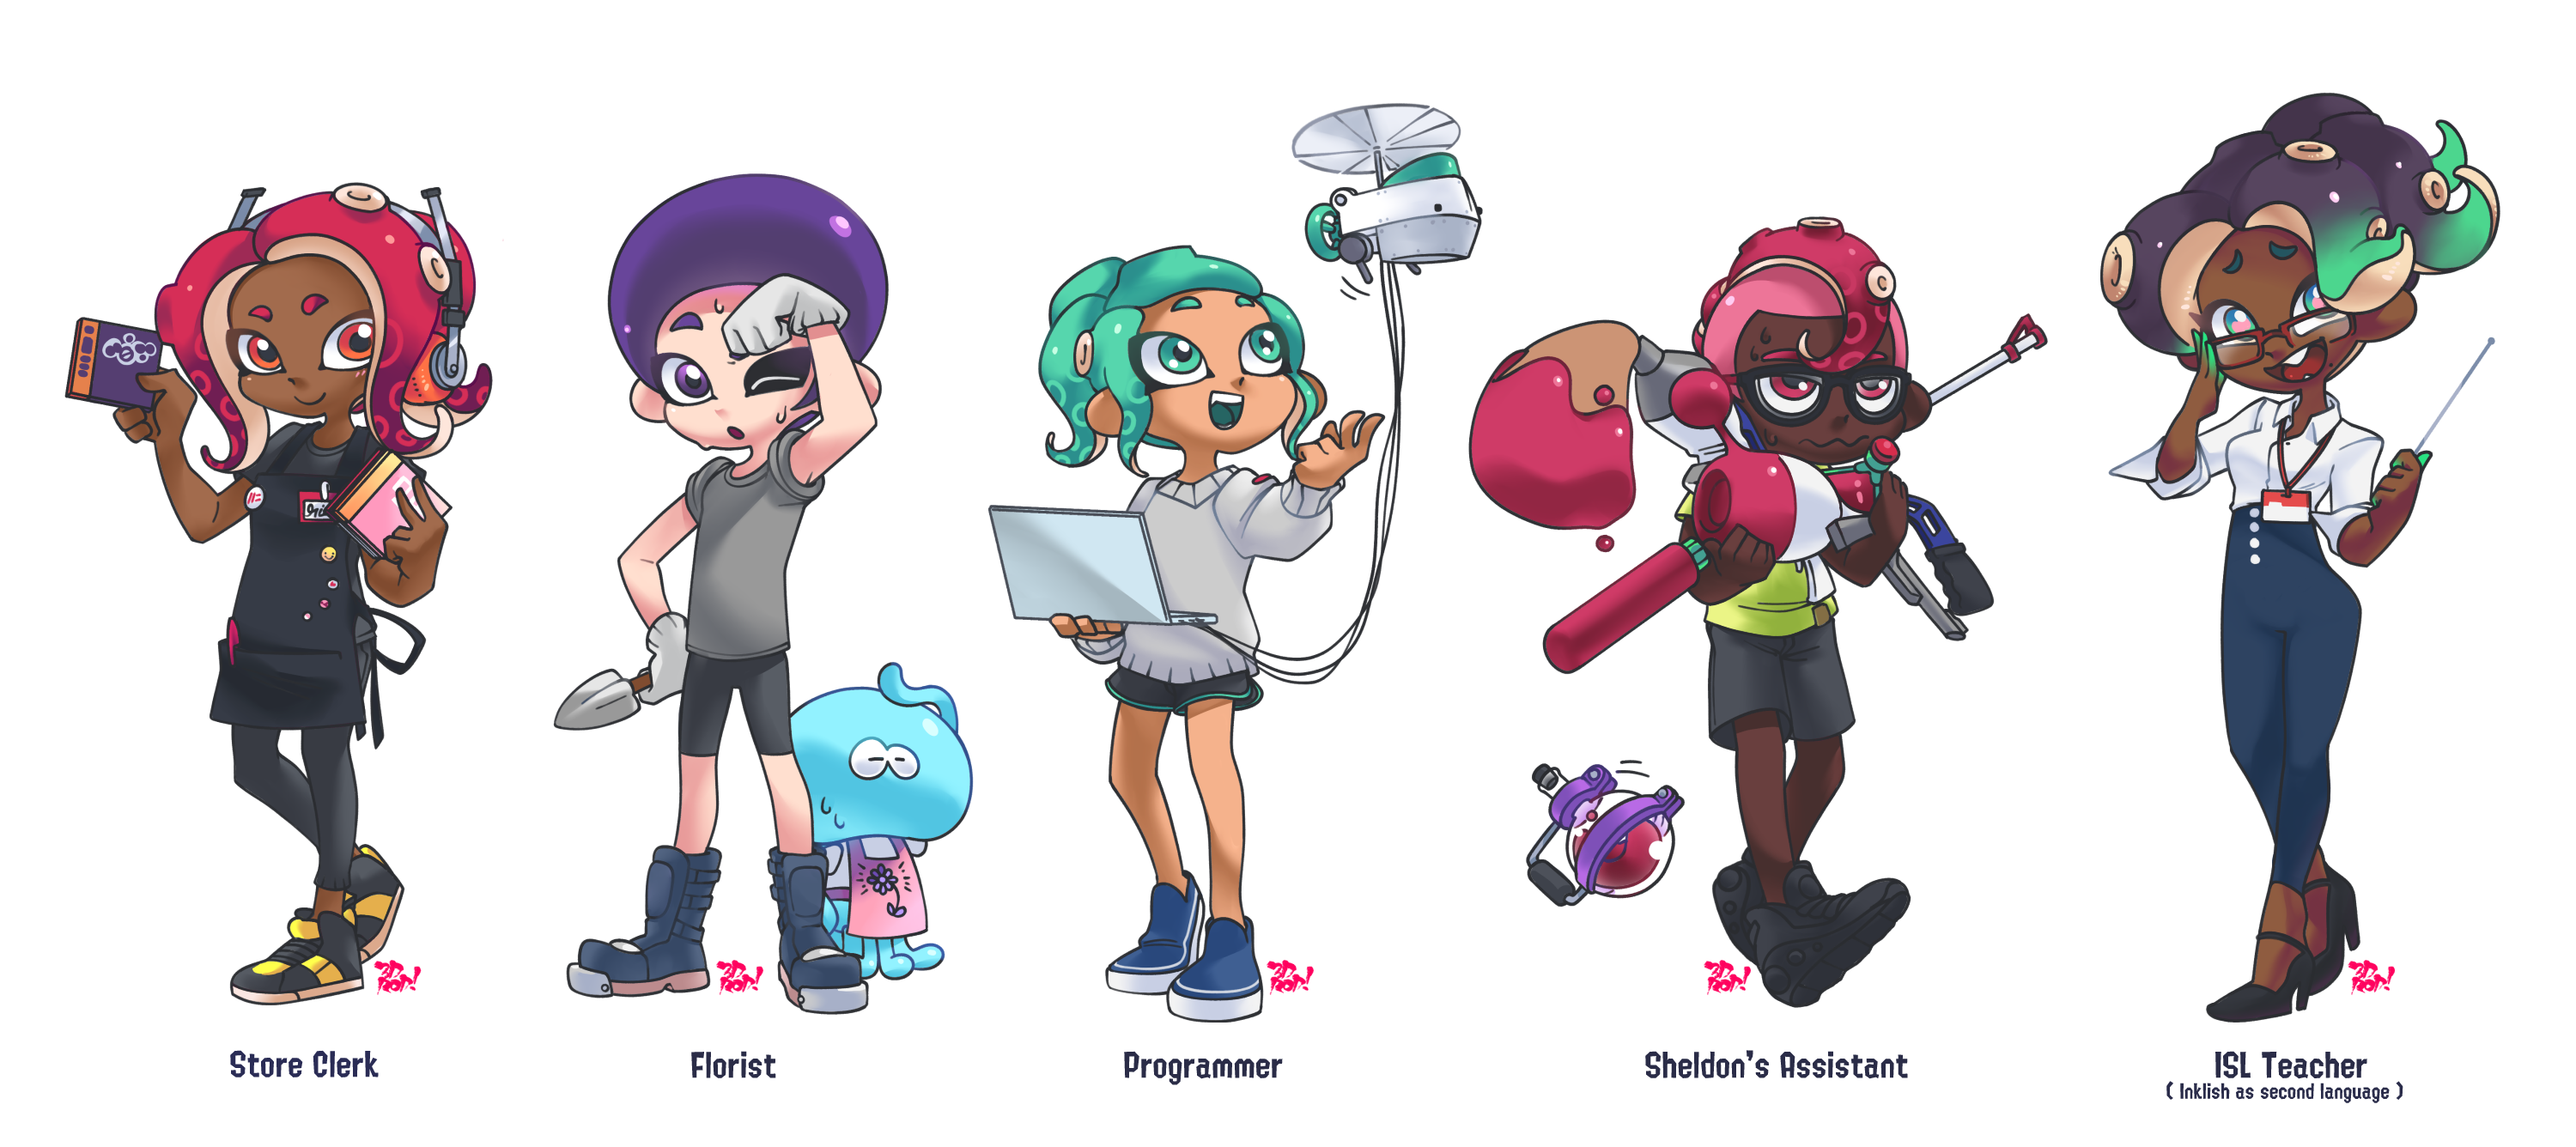 Octoling workers